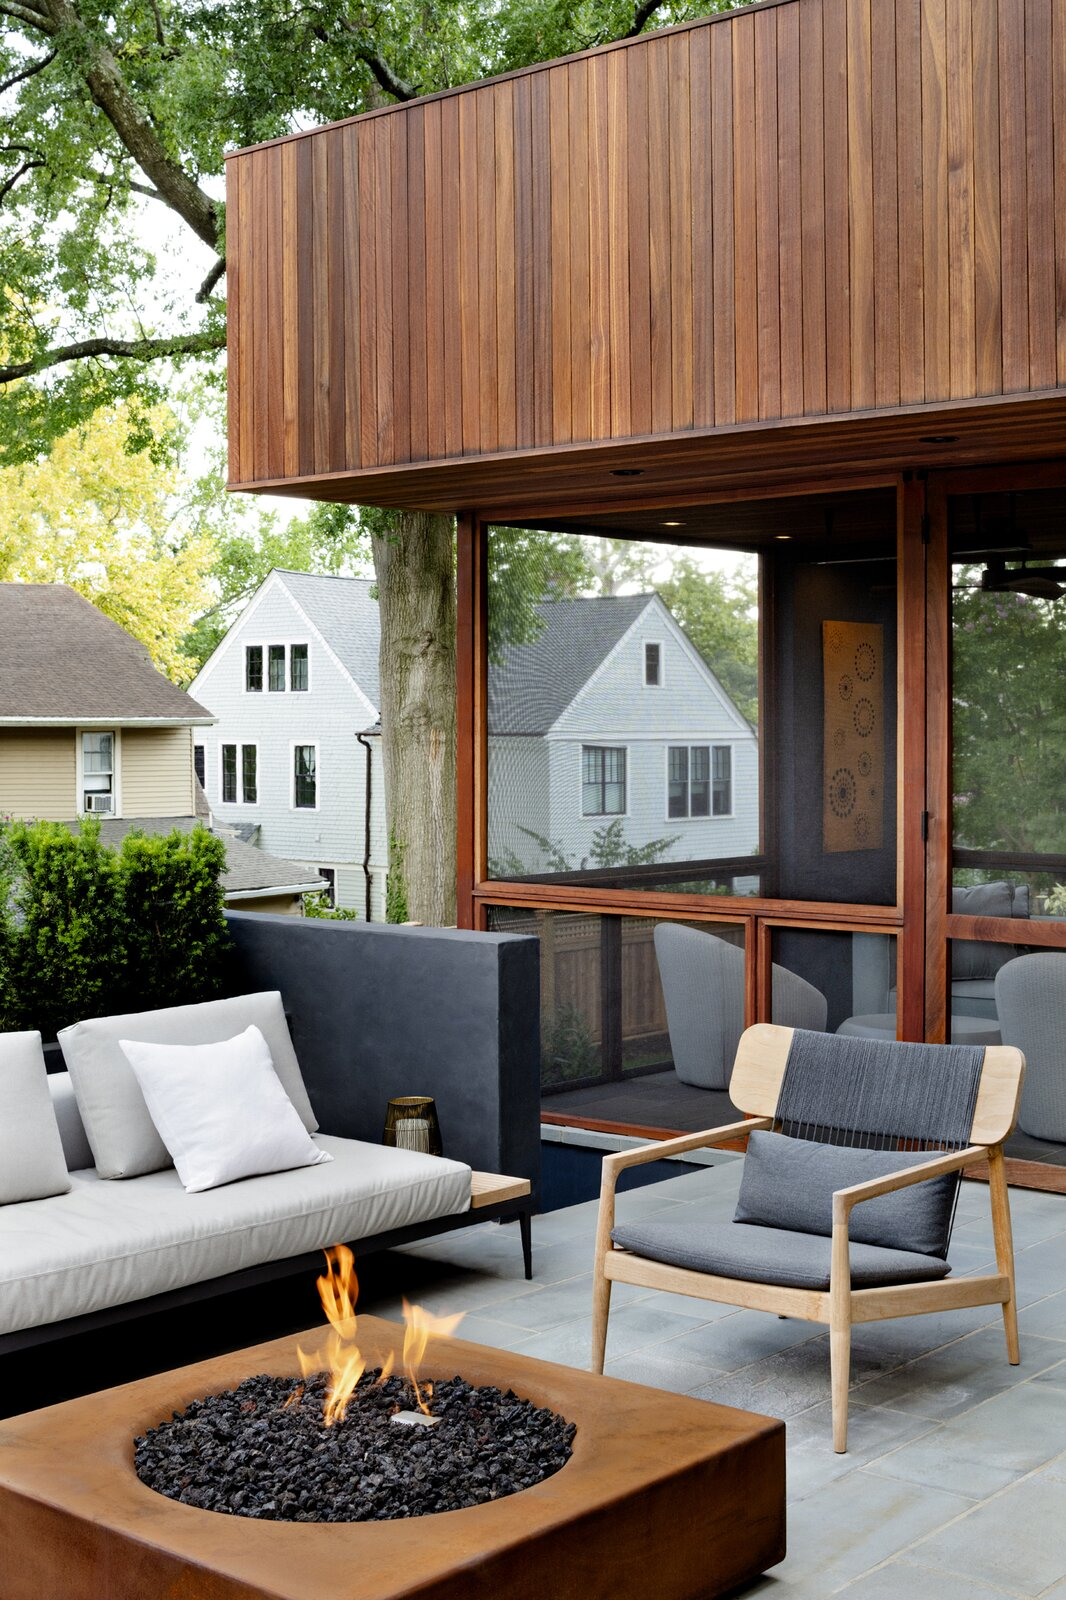 Stephenson House by Assembledge+ and Fowlkes Studio terrace